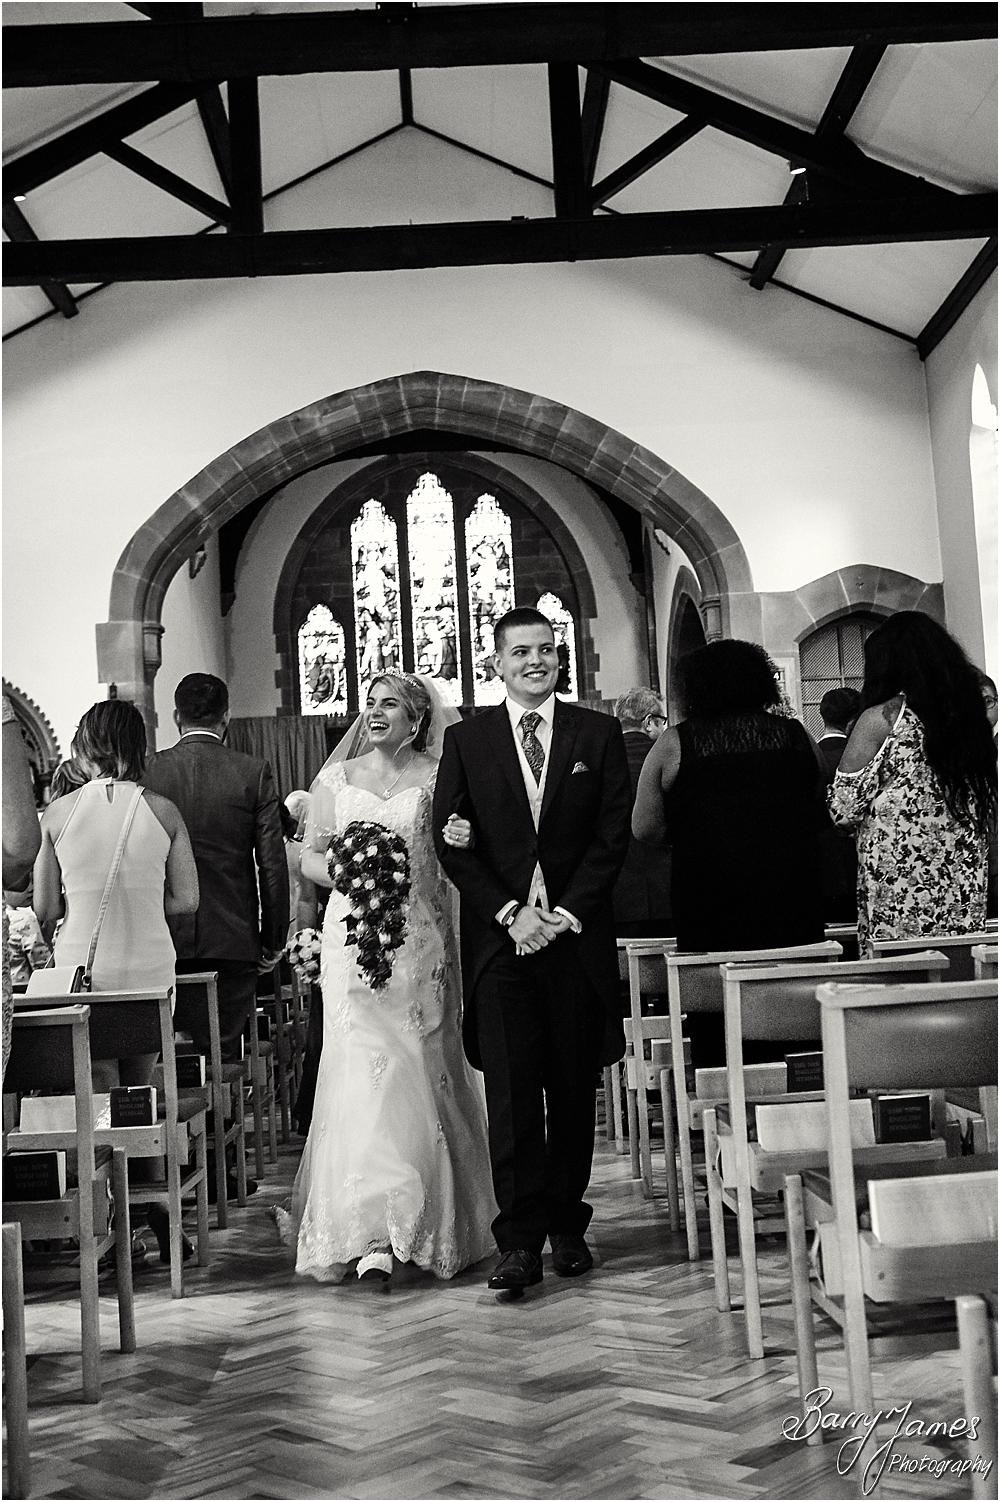 Unobtrusive photographs of the beautiful wedding ceremony at St Michaels Church Pelsall by Walsall Wedding Photographer Barry James